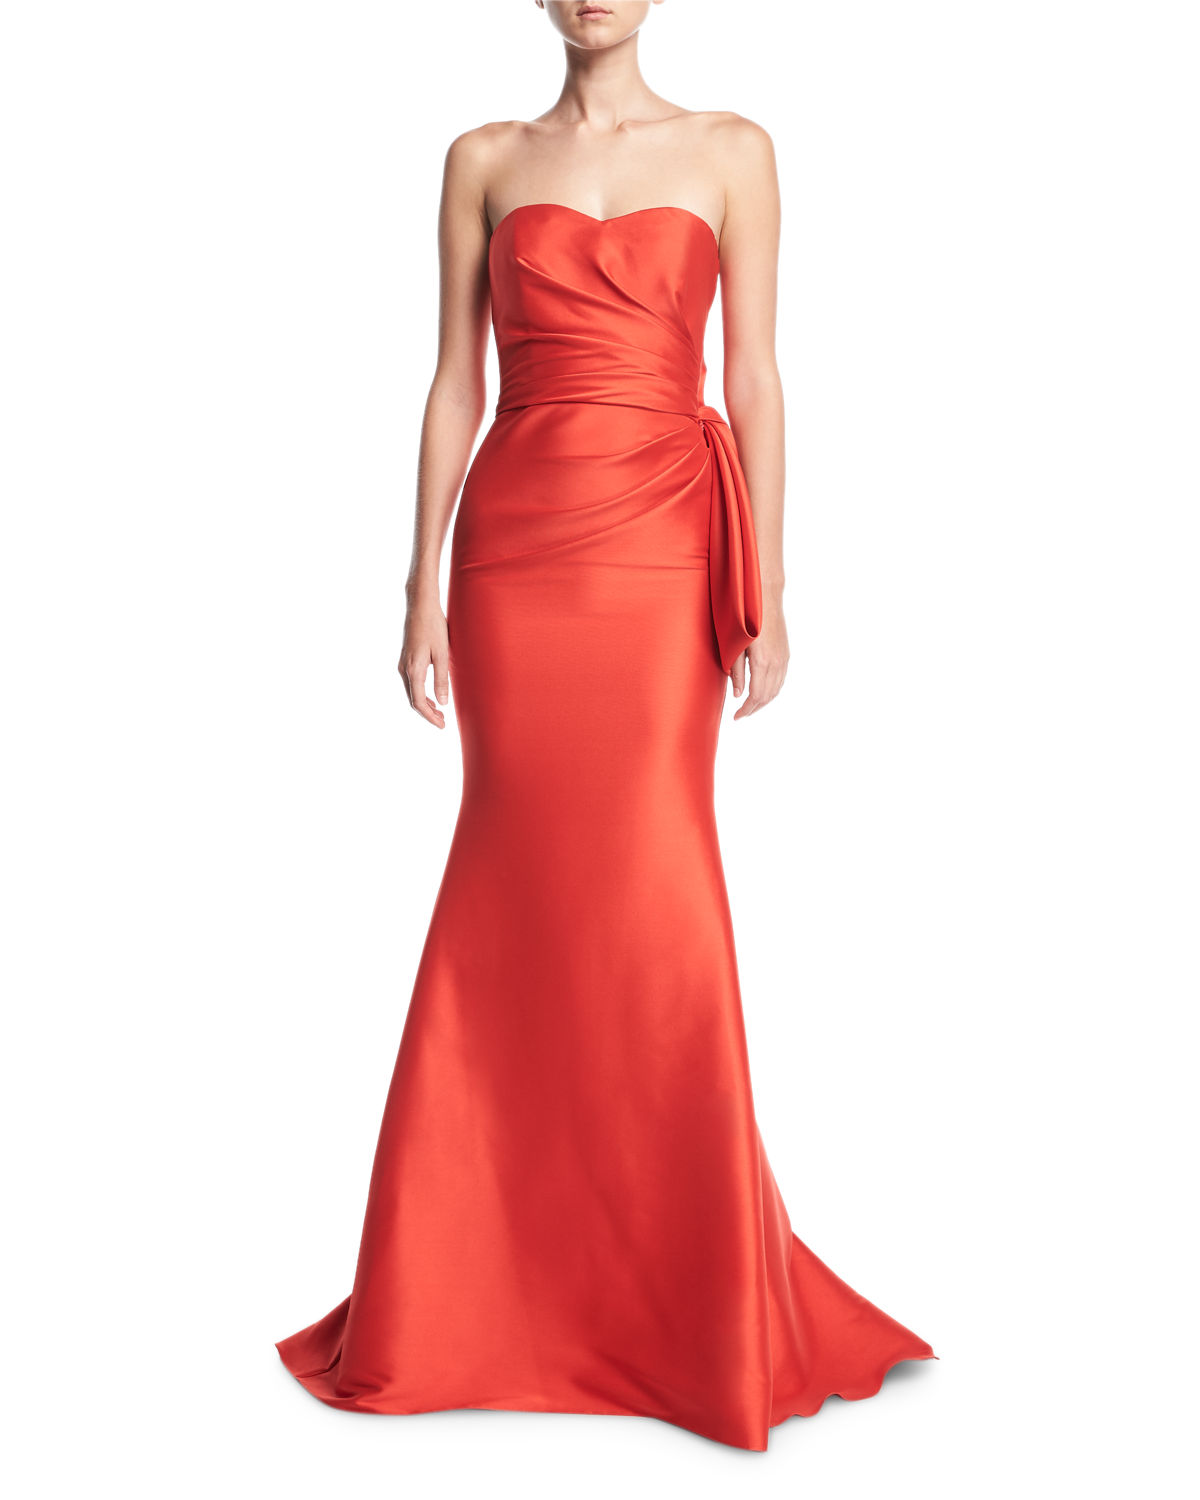 Strapless Sweetheart Mikado Satin Evening Gown w/ Bow Detail